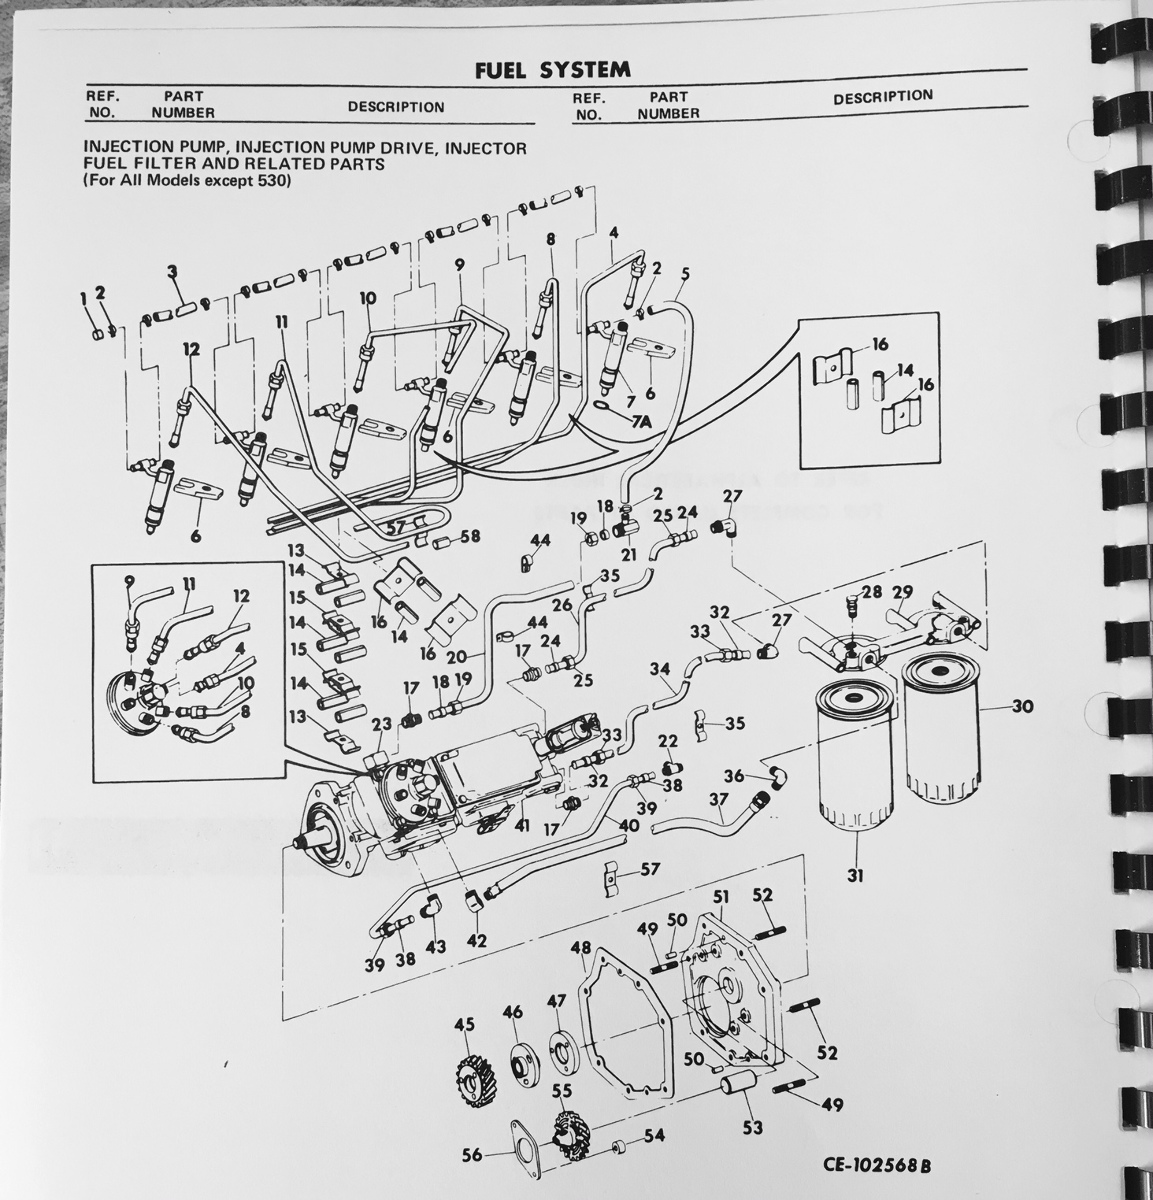 International Dt466 Engine Fuel Injector Diagram - Wiring Diagram